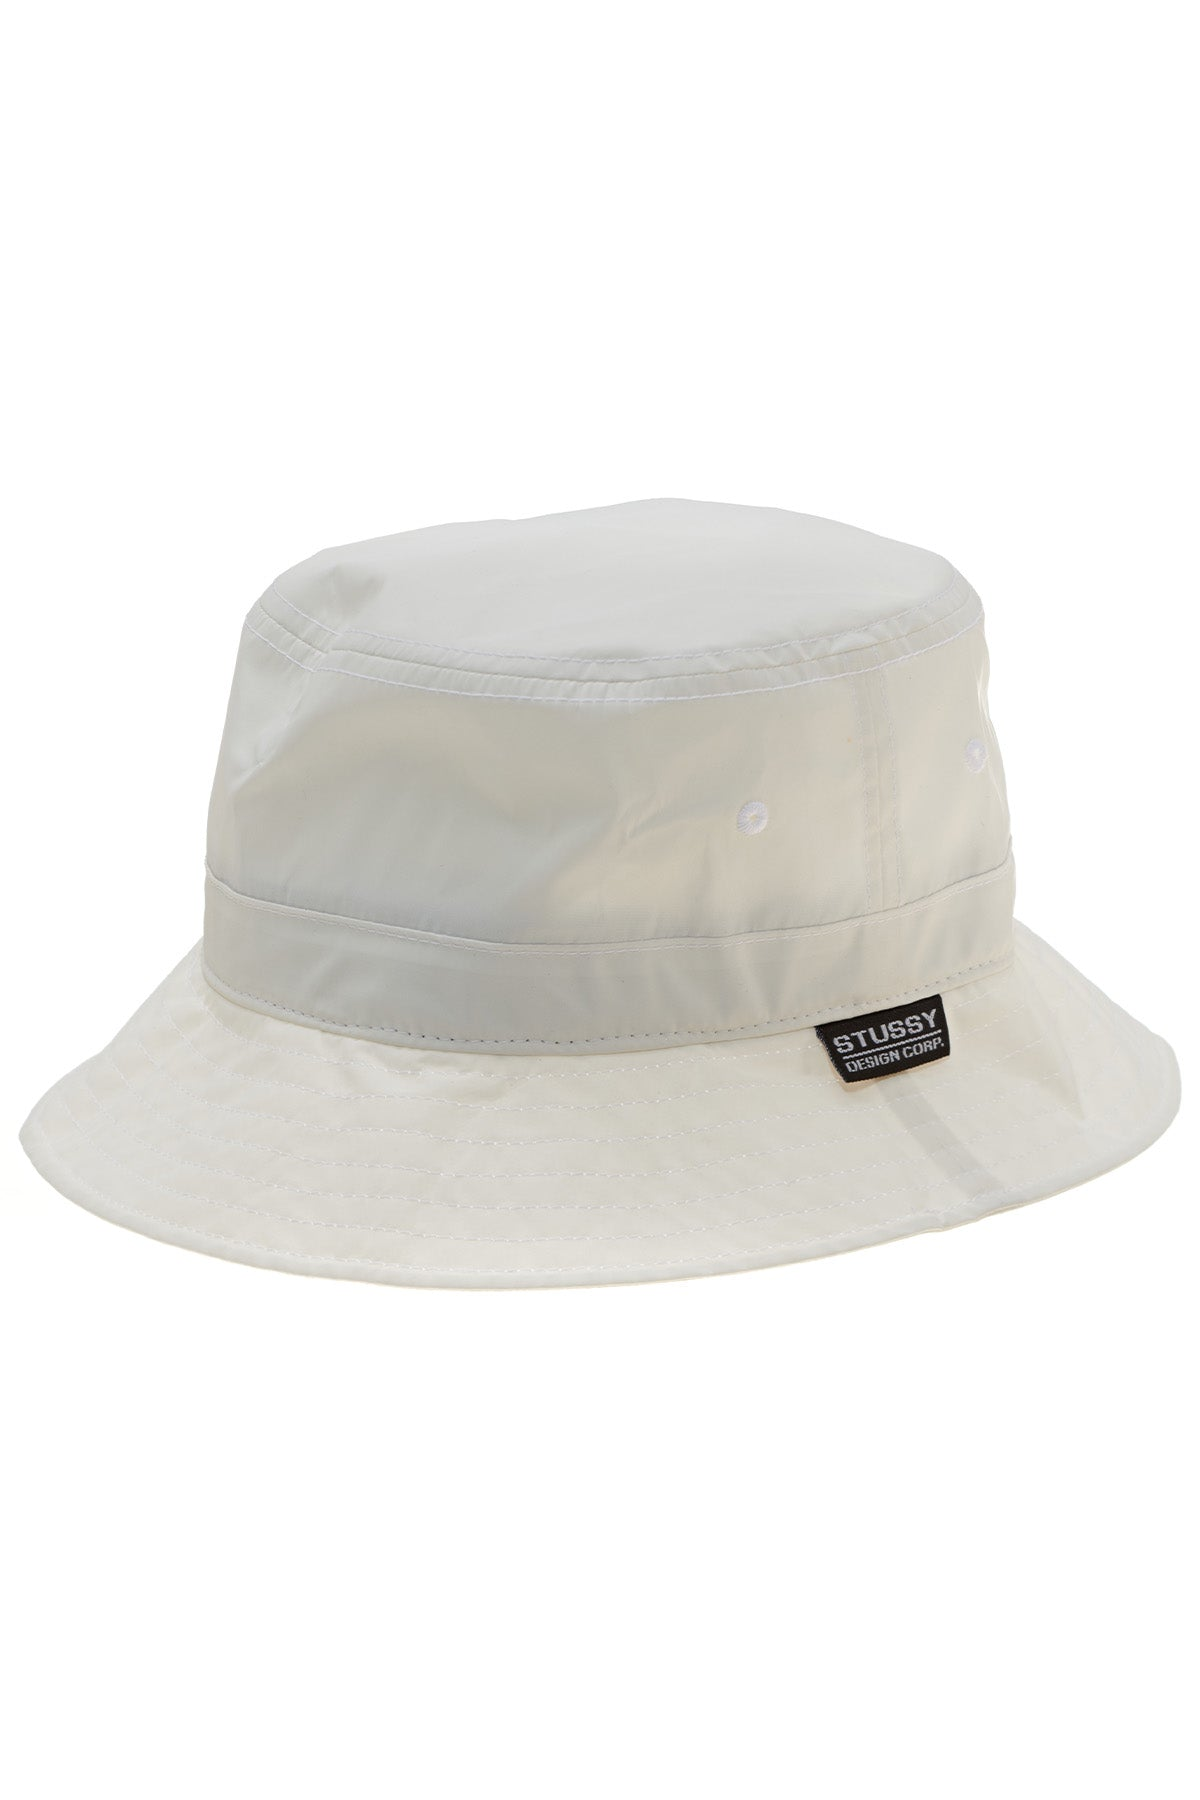 Stussy Design Corp. Bucket Hat